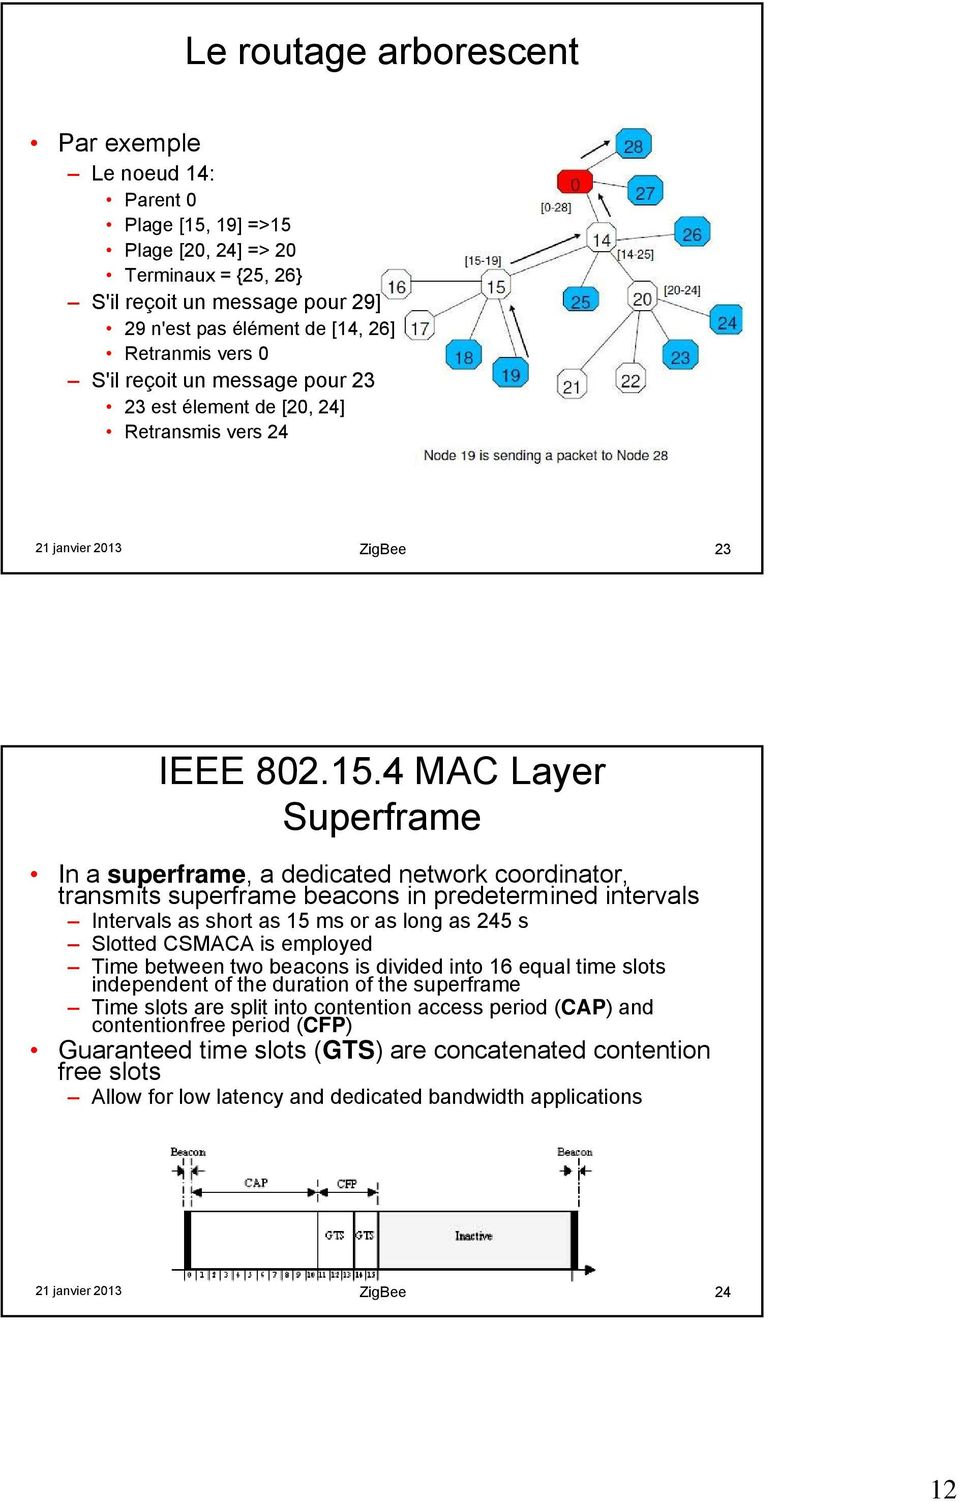 4 MAC Layer Superframe In a superframe, a dedicated network coordinator, transmits superframe beacons in predetermined intervals Intervals as short as 15 ms or as long as 245 s Slotted CSMACA is